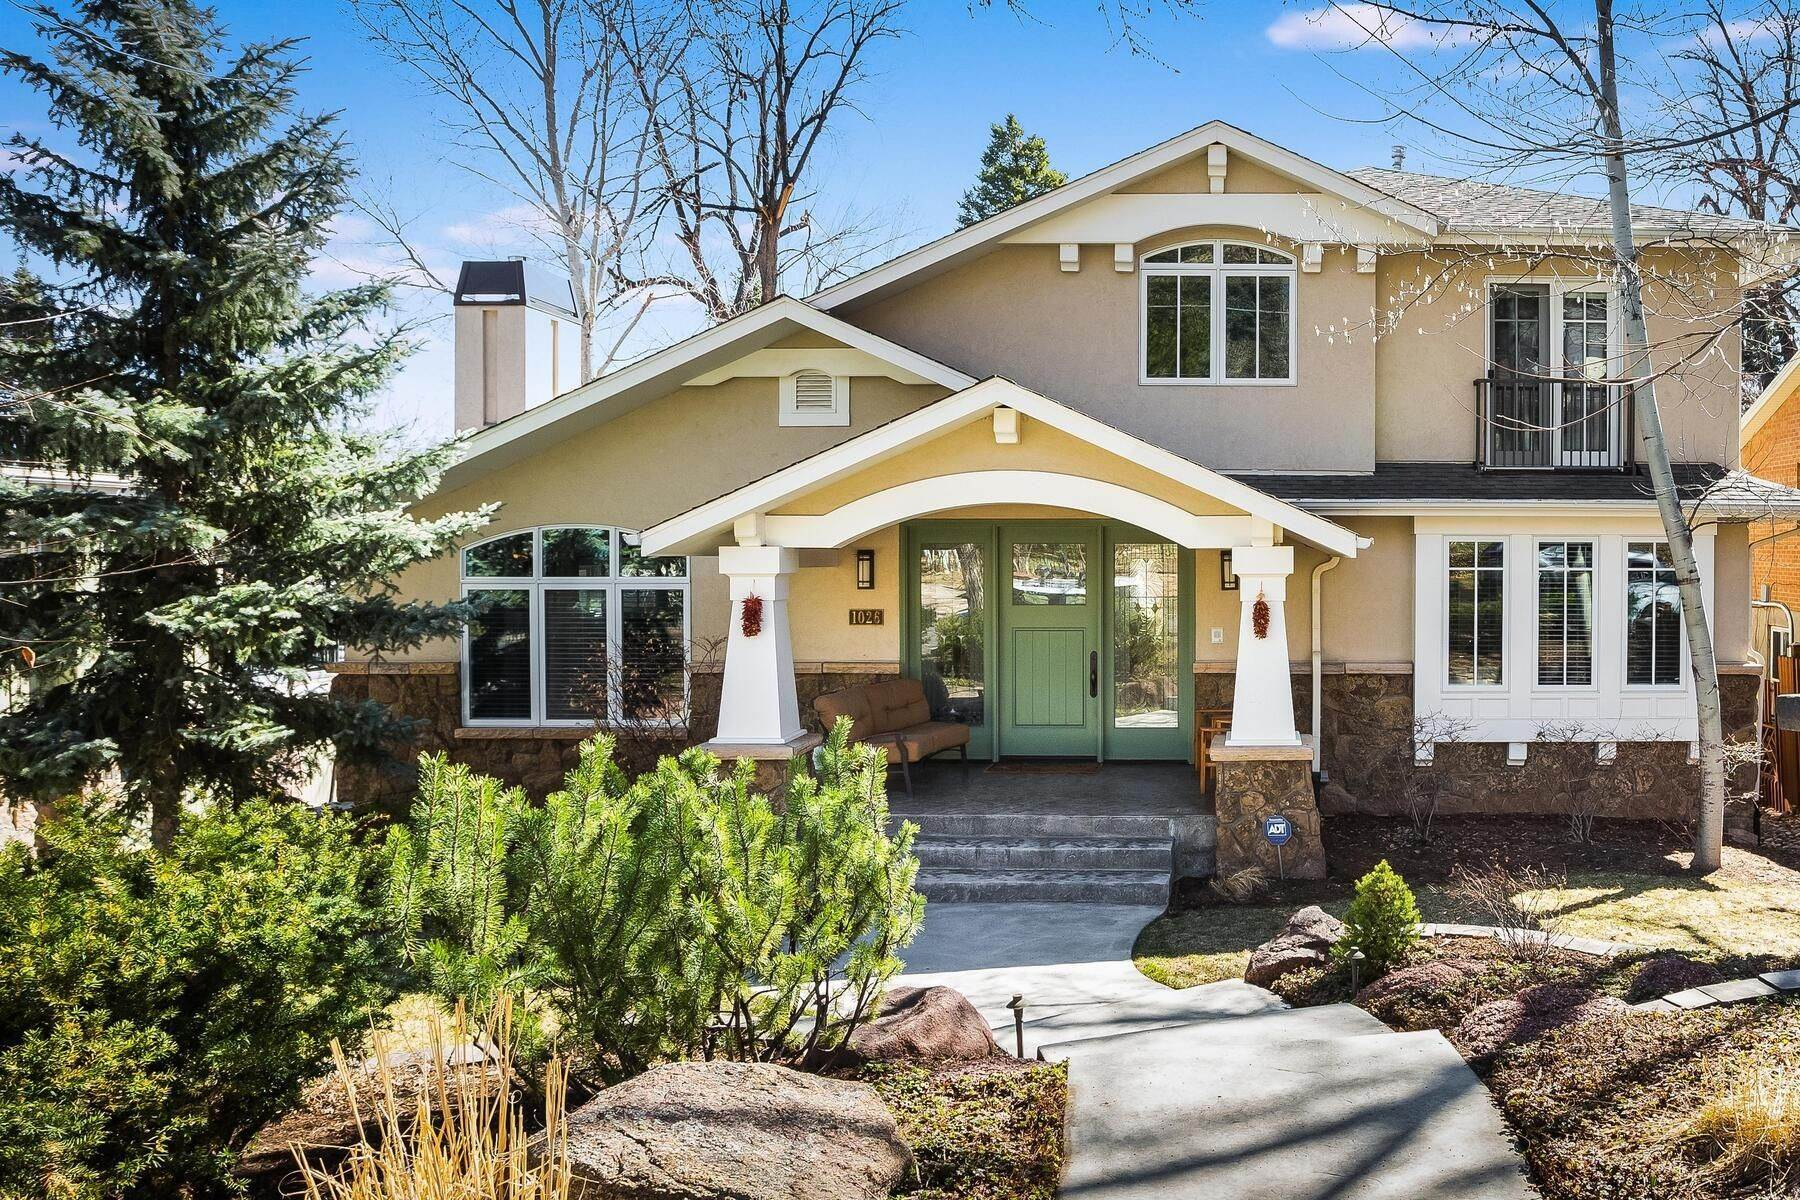 Single Family Homes for Active at 1026 6th Street, Boulder, CO, 80302 1026 6th Street Boulder, Colorado 80302 United States